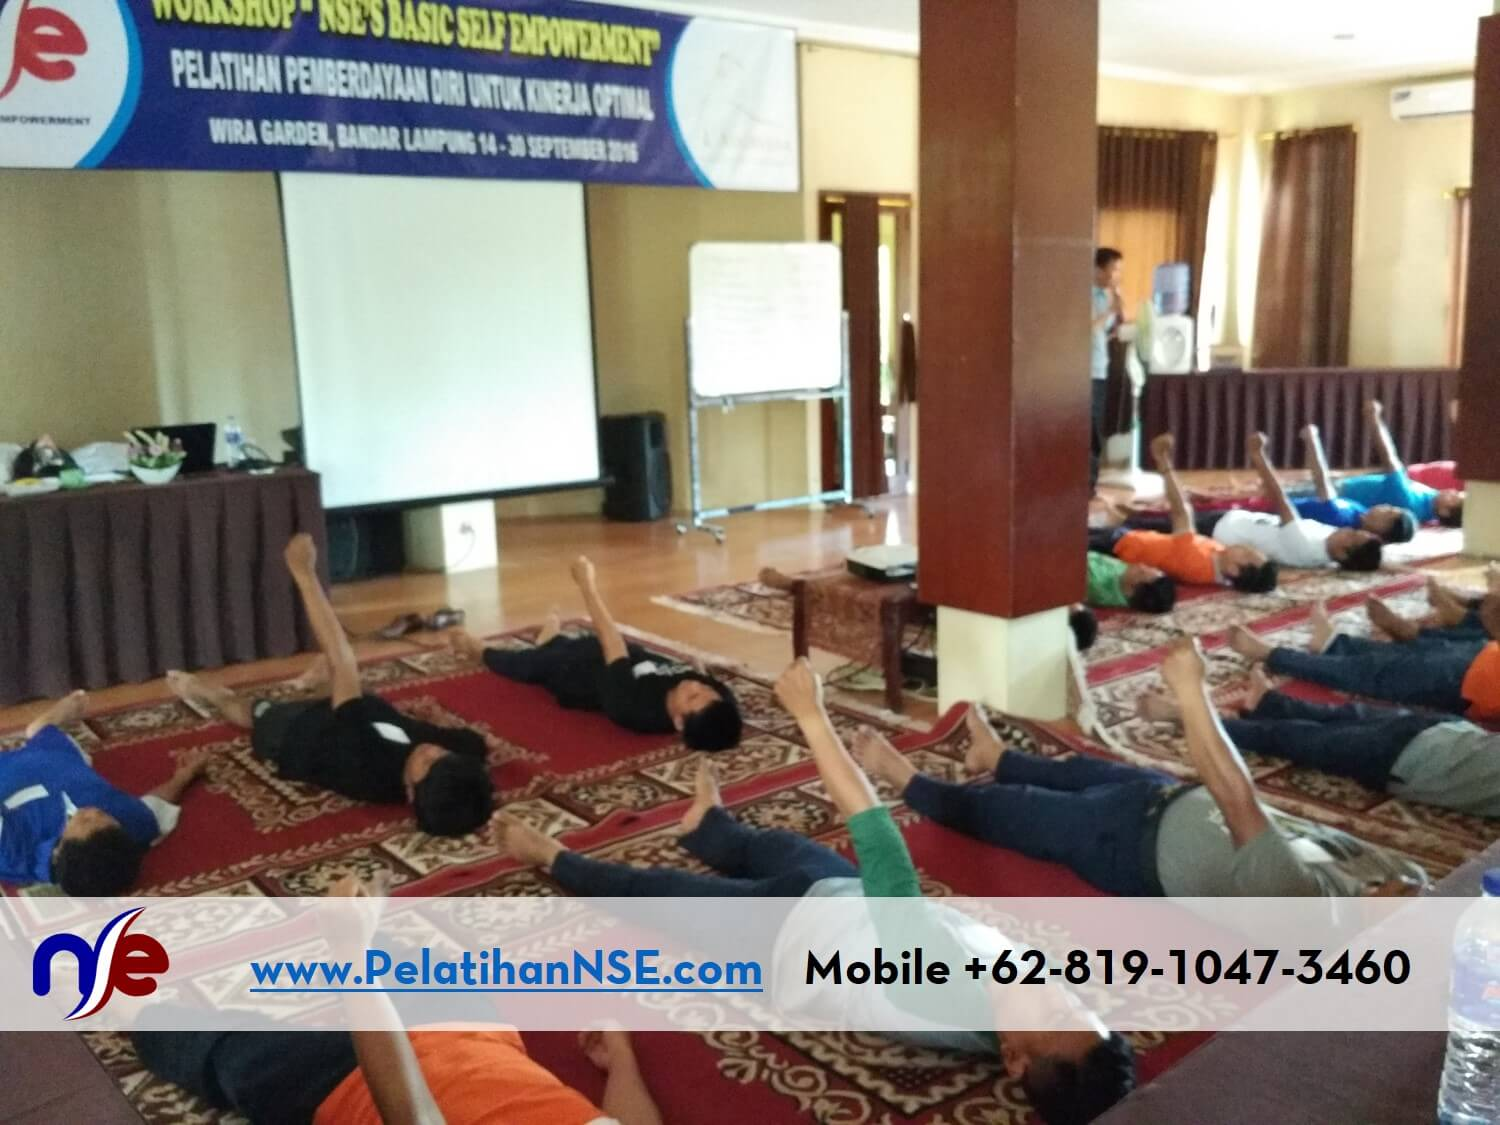 NSE Basic Self Empowerment KAI 16-17 September 2016 - Speedy Relaxation Technique sambil Berbaring